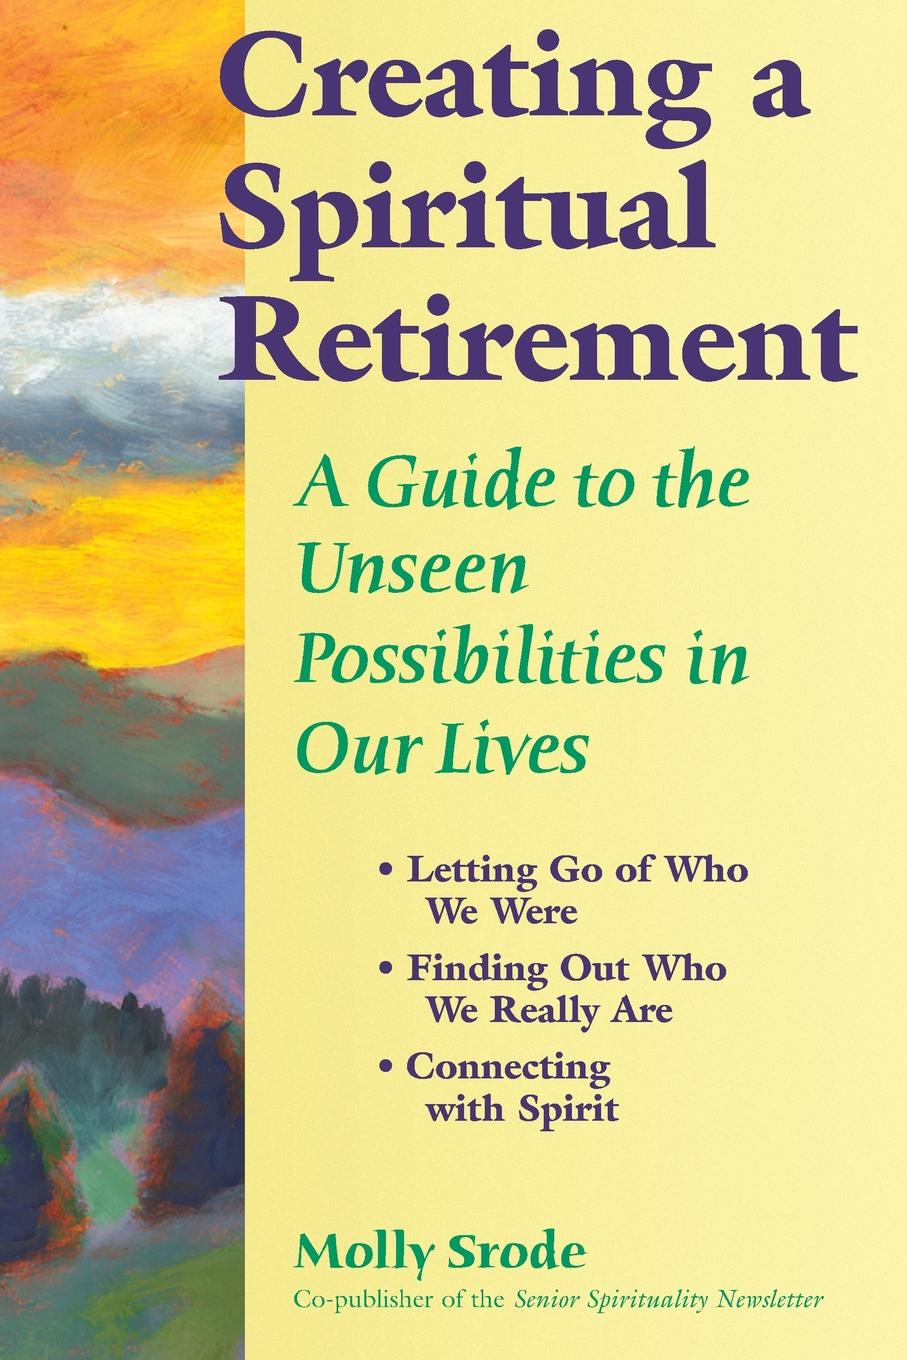 Creating a Spiritual Retirement. A Guide to the Unseen Possibilities in Our Lives